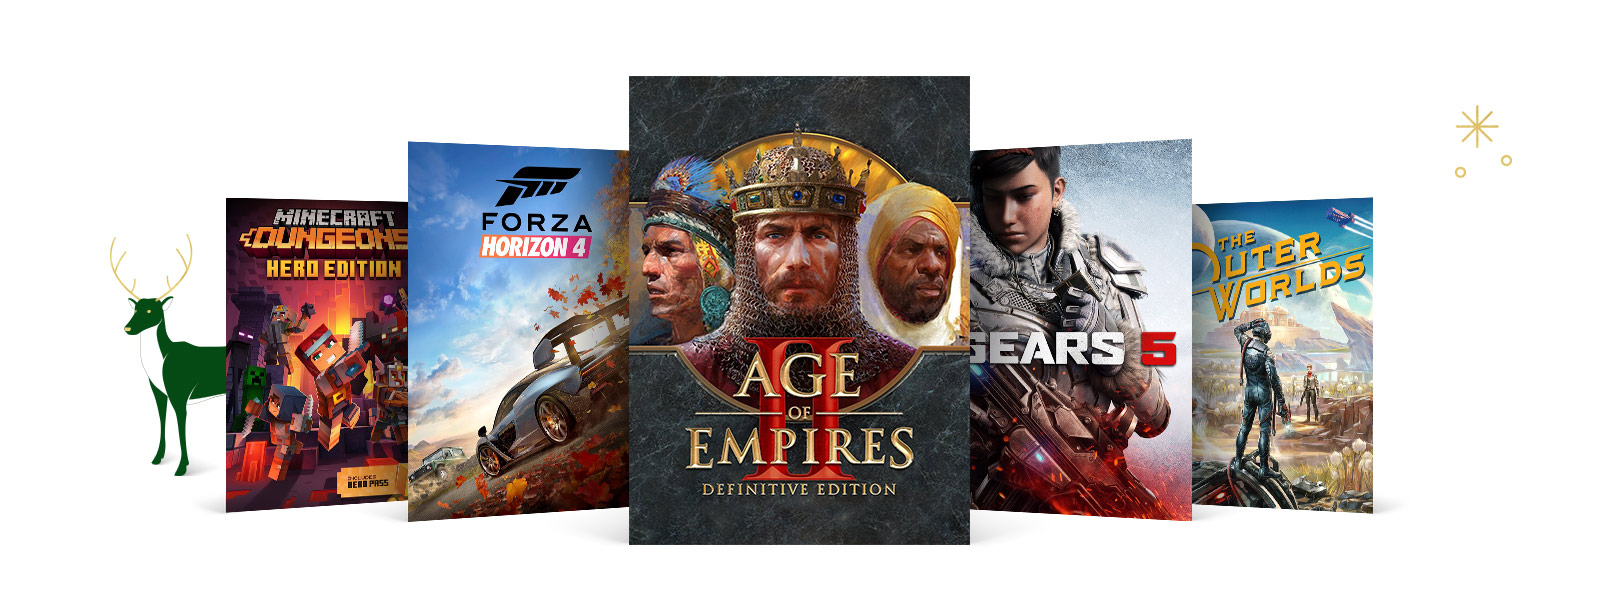 Collection of games, including Minecraft Dungeons Herd Edition, Forza Horizon 4, Age of Empires II Definitive Edition, Gears 5 and The Outer Worlds.